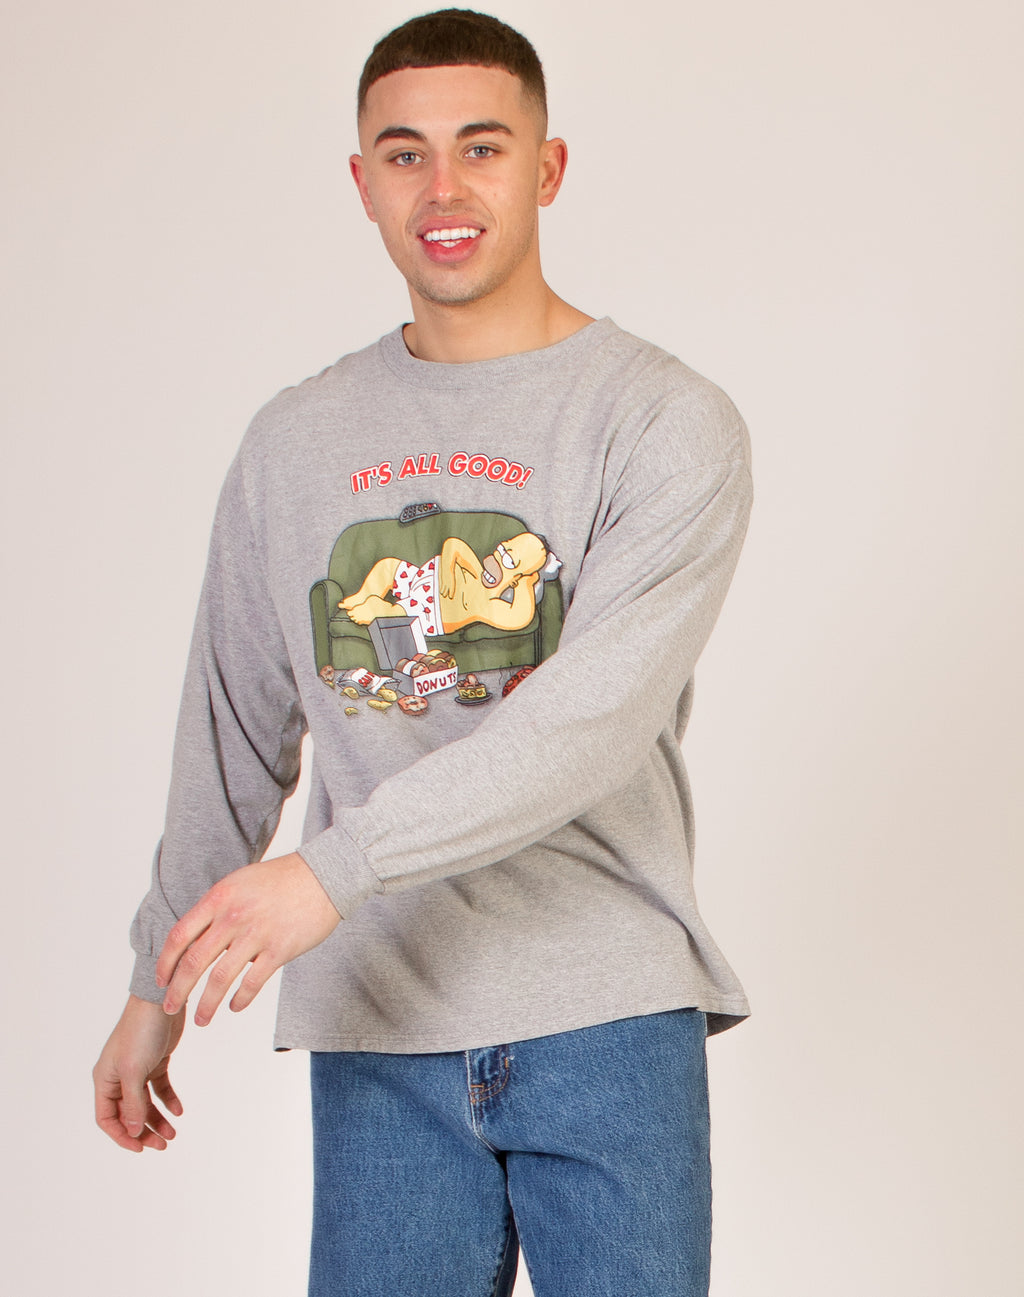 HOMER SIMPSON LONG SLEEVE TOP